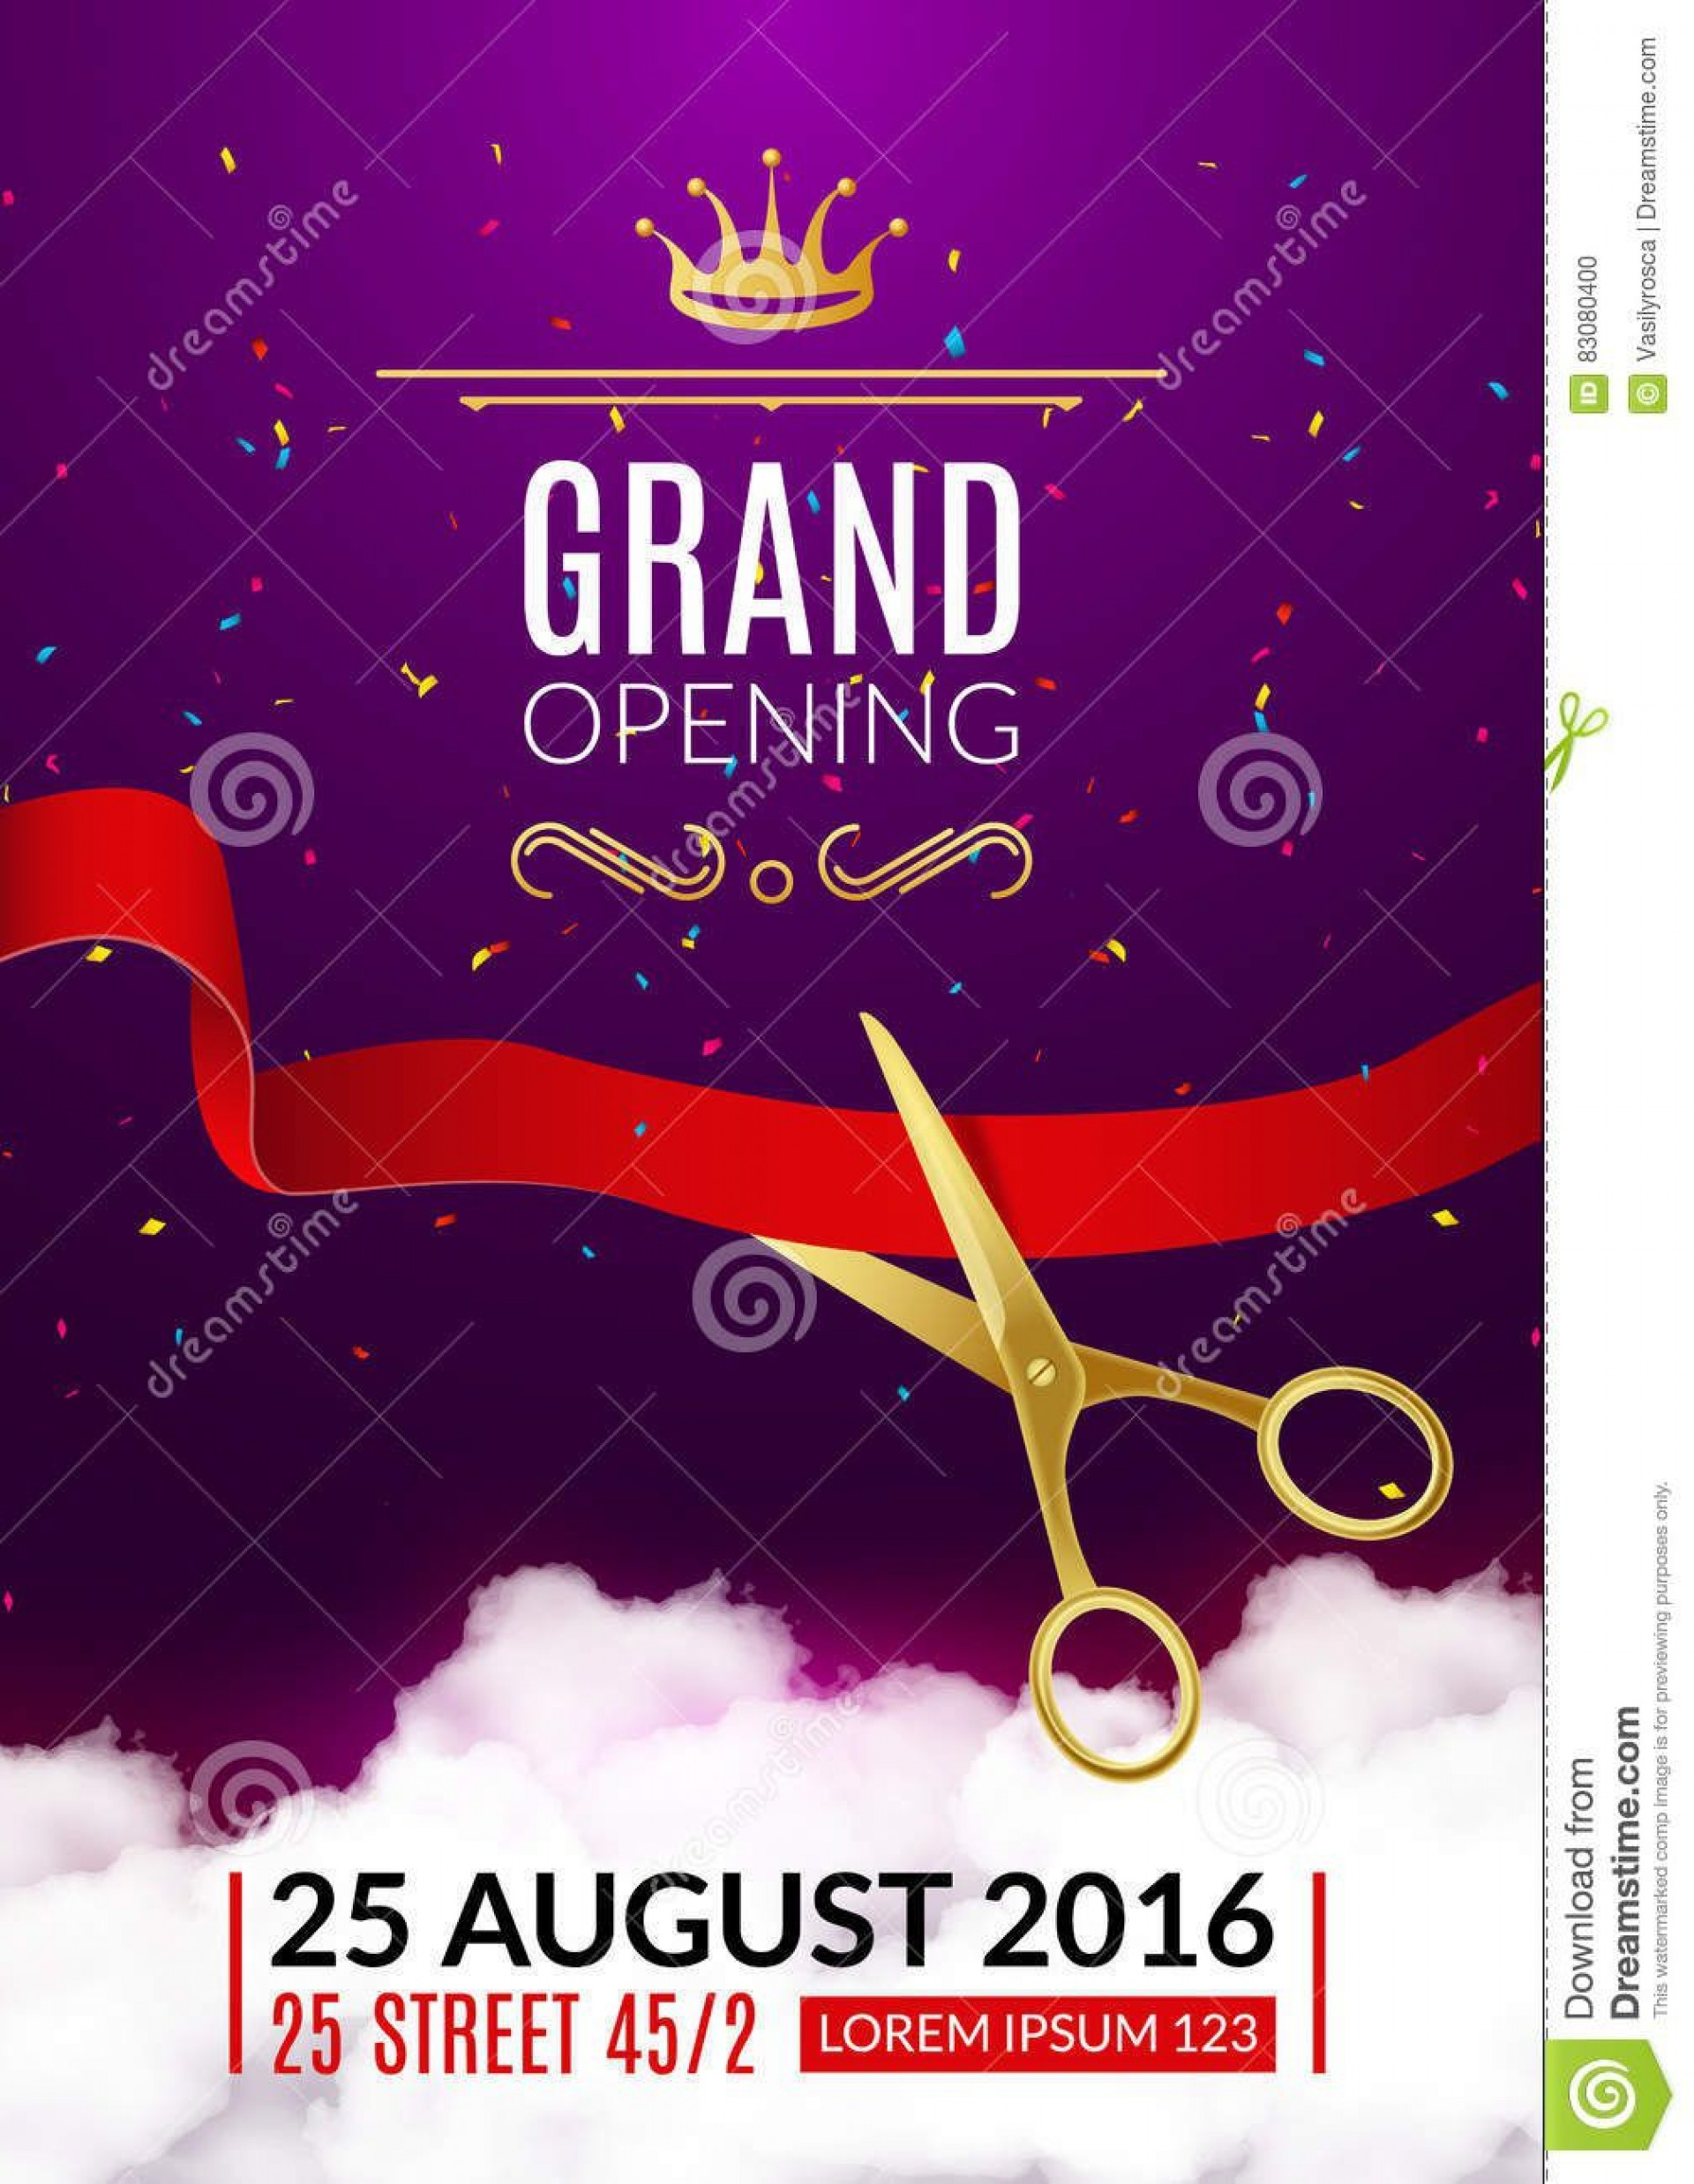 007 Exceptional Grand Opening Flyer Template Free Picture  Restaurant1920